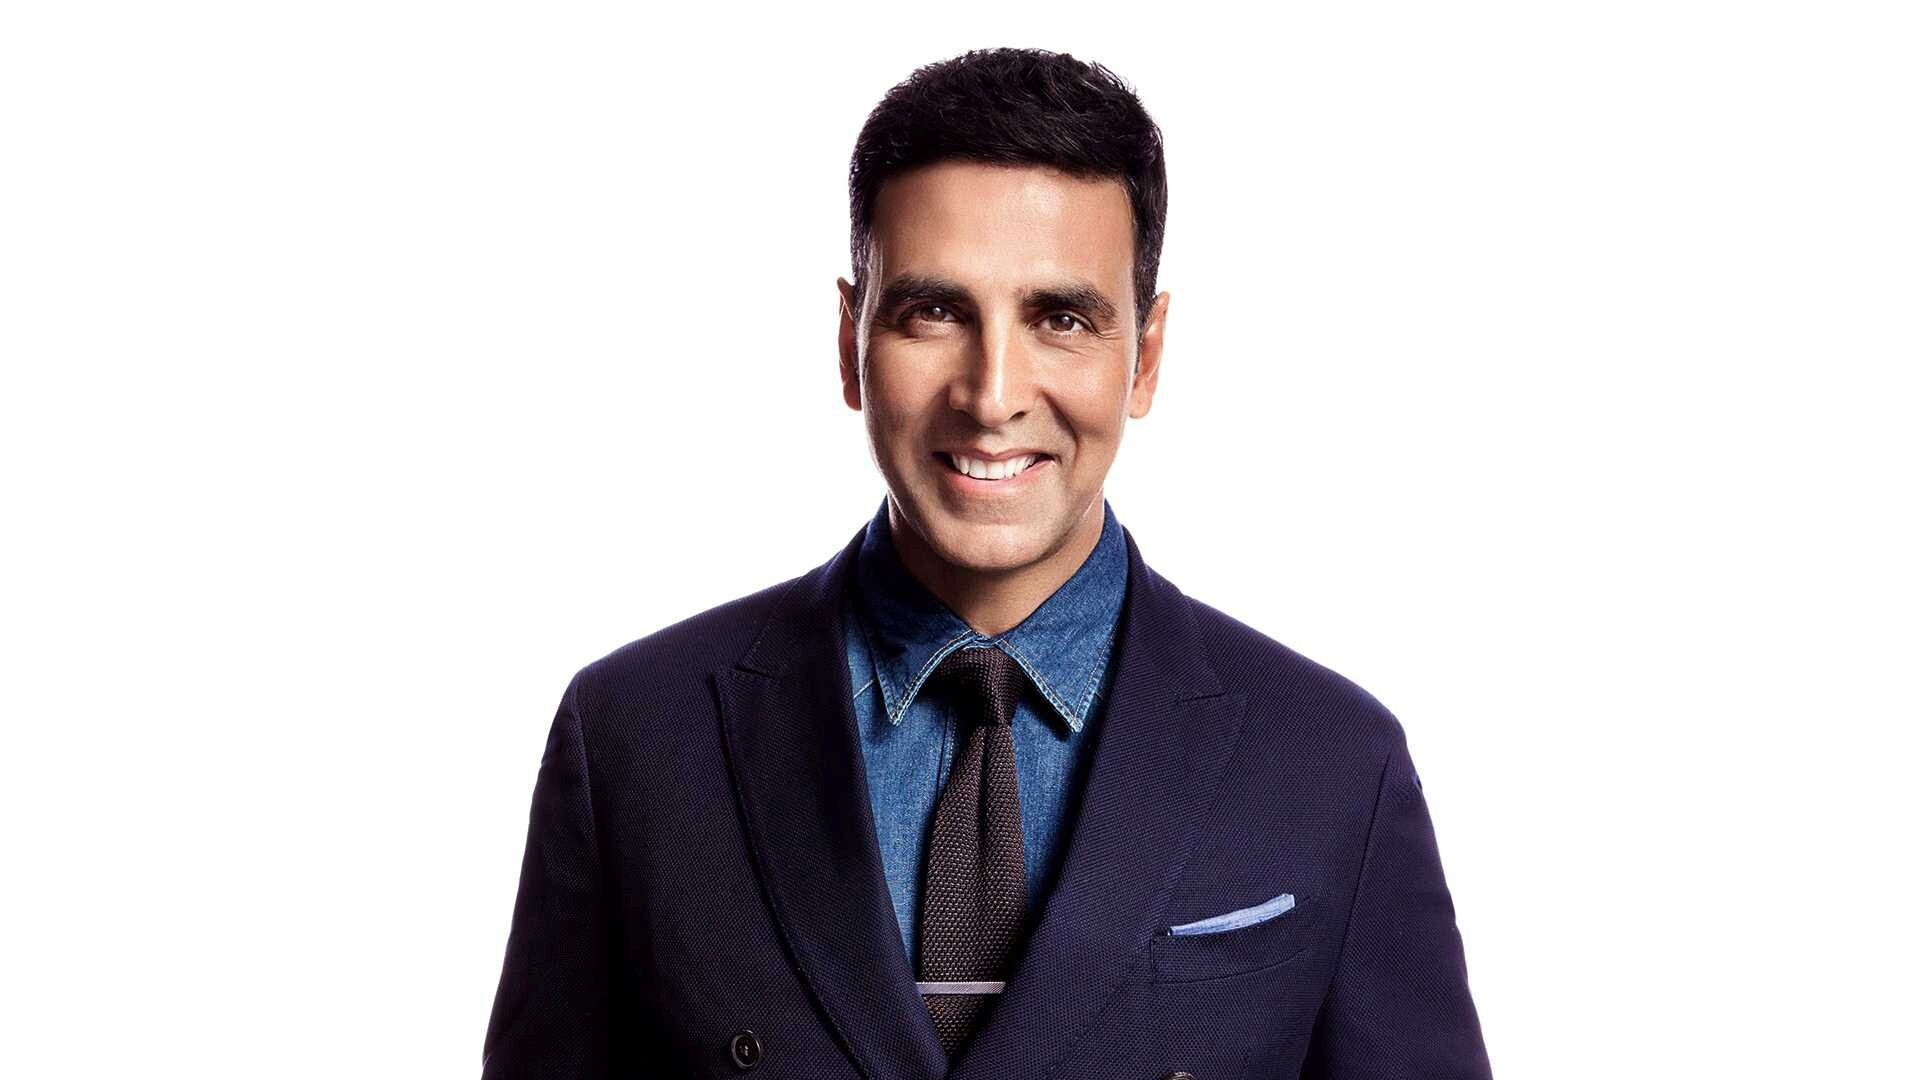 Akshay Kumar Wallpapers Free Download Bollywood Actors Hd Images